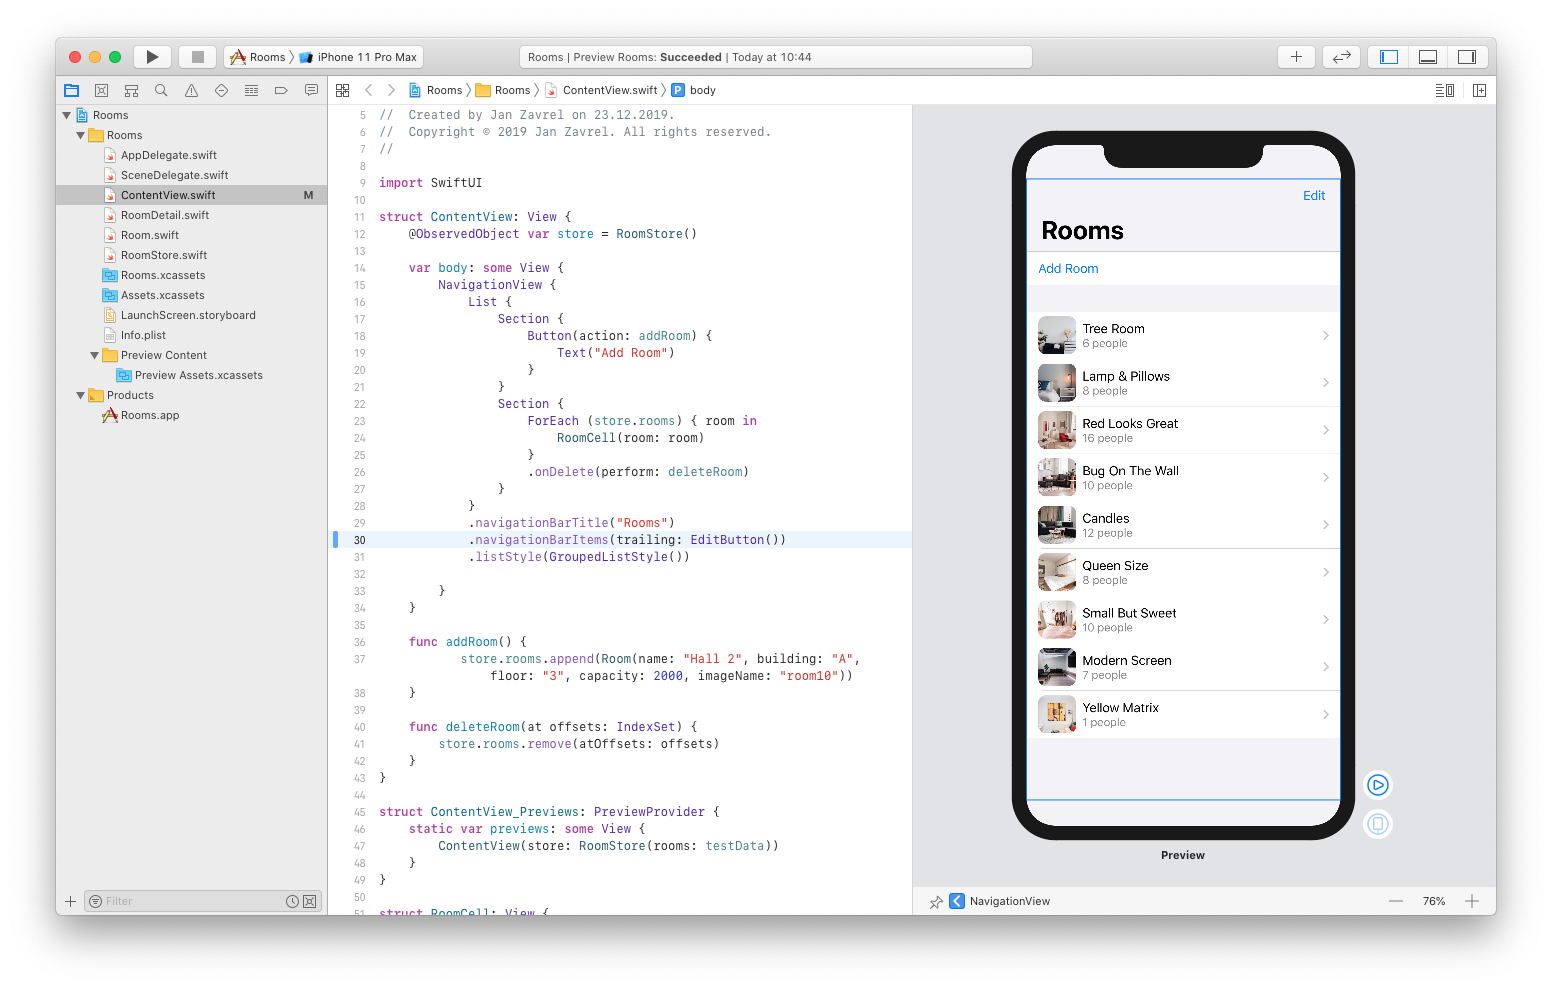 https://res.cloudinary.com/zavrelj/image/upload/v1578455599/codewithjan/swiftui-by-examples/swiftui-by-examples-57.png